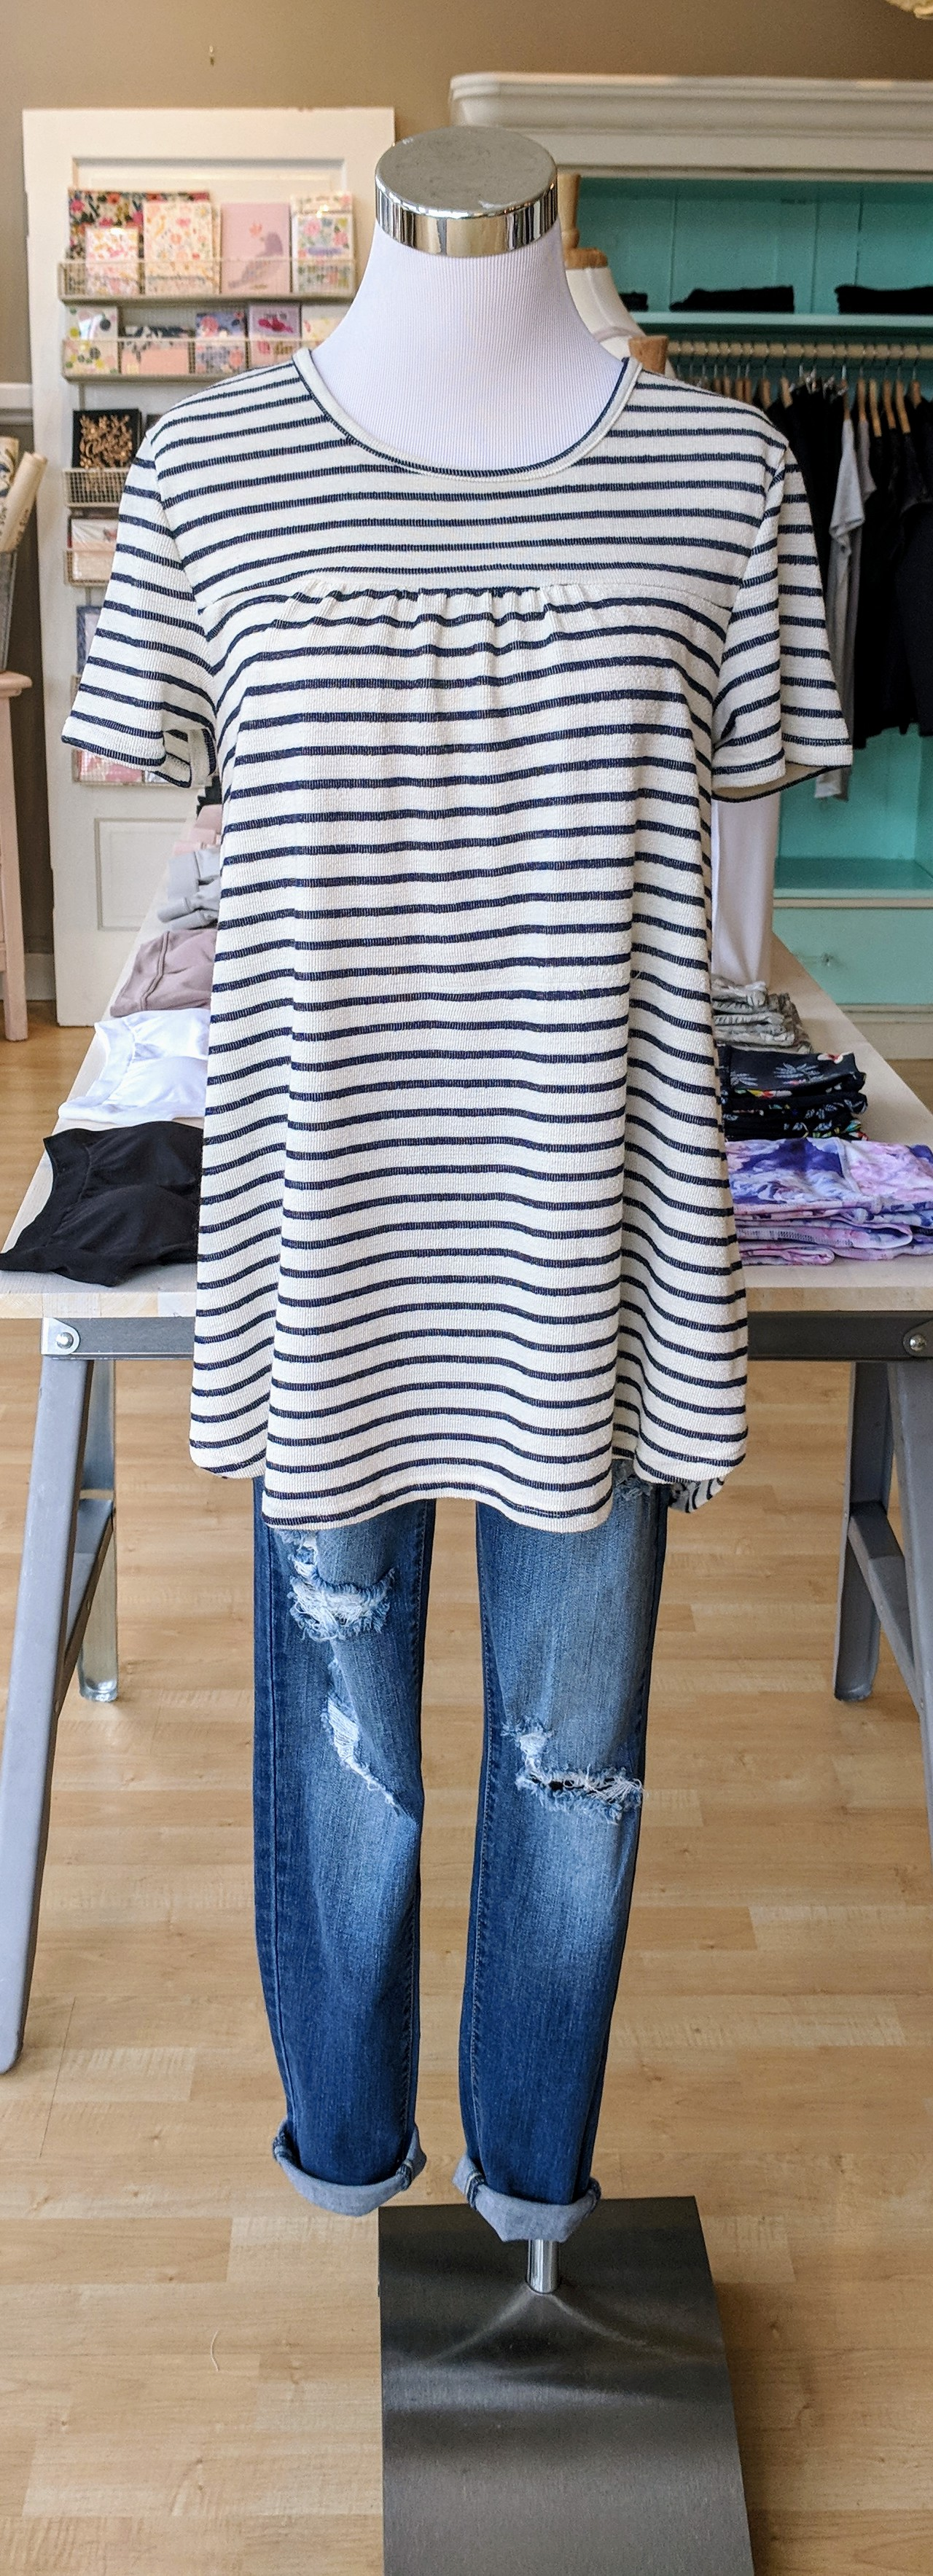 Navy and white stripe top $32